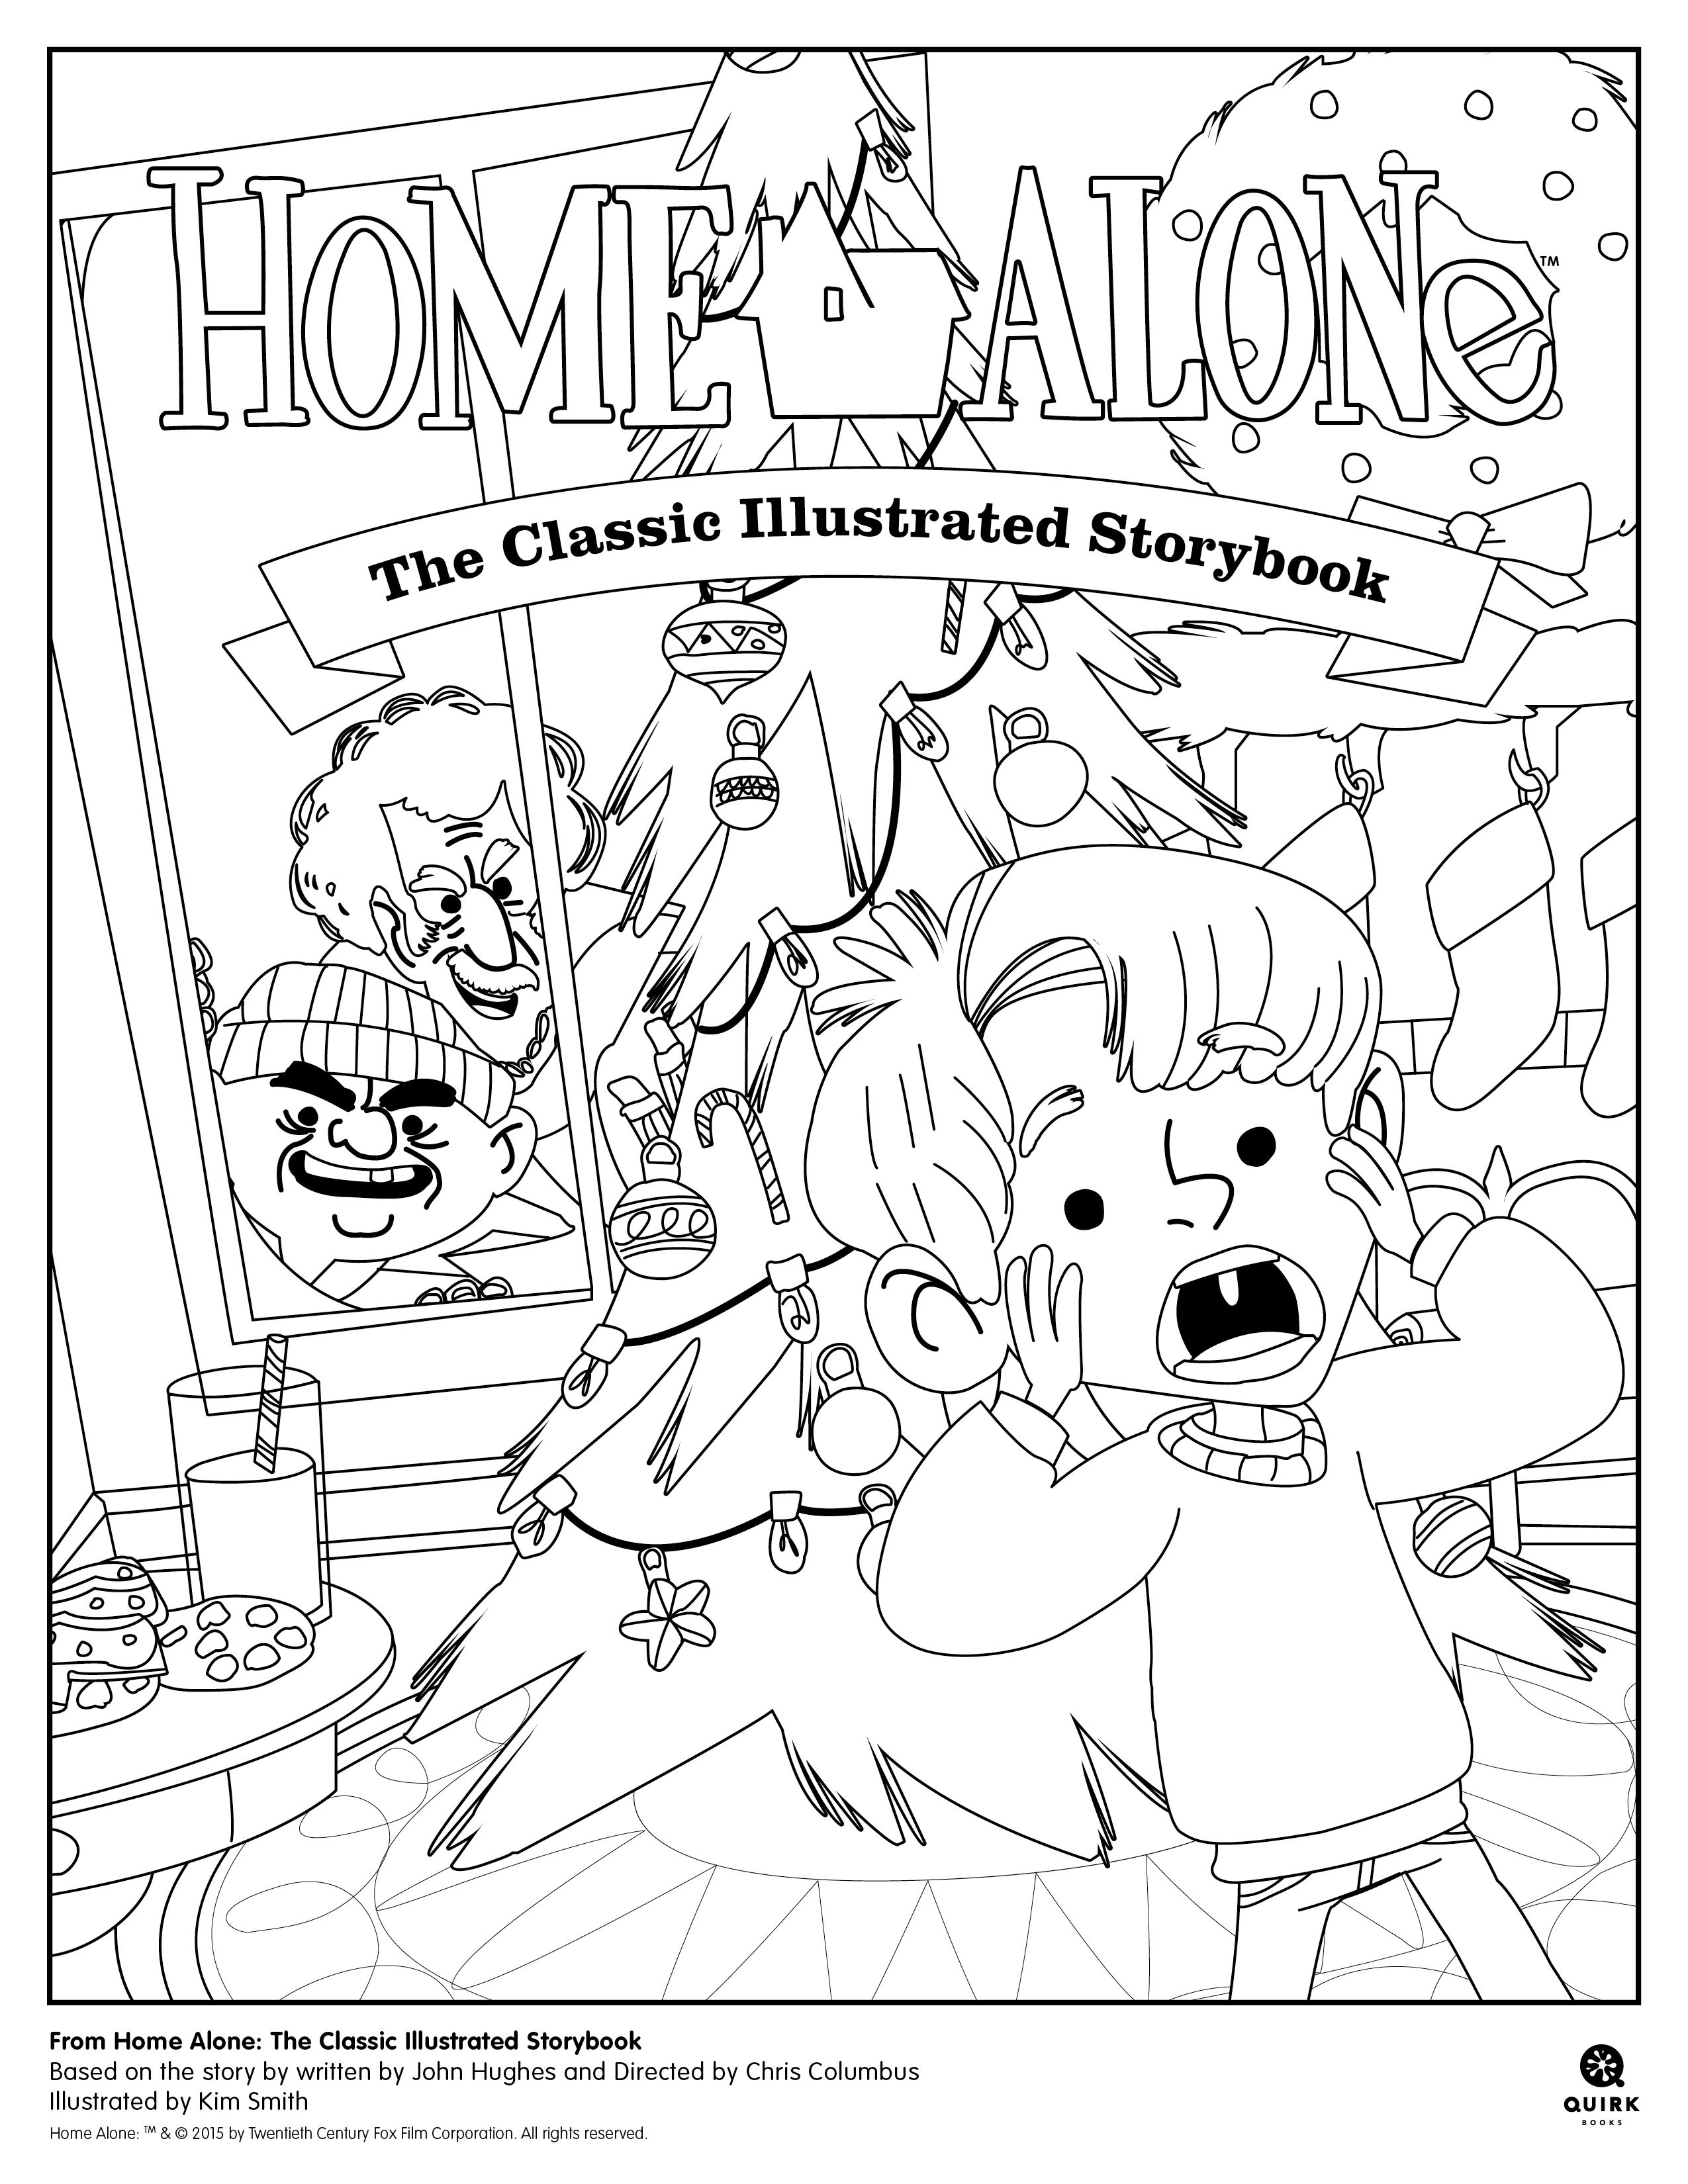 Coloring Page From Home Alone The Classic Illustrated Storybook Picturebook Holidays Edu Christmas Coloring Pages Coloring Pages Toy Story Coloring Pages